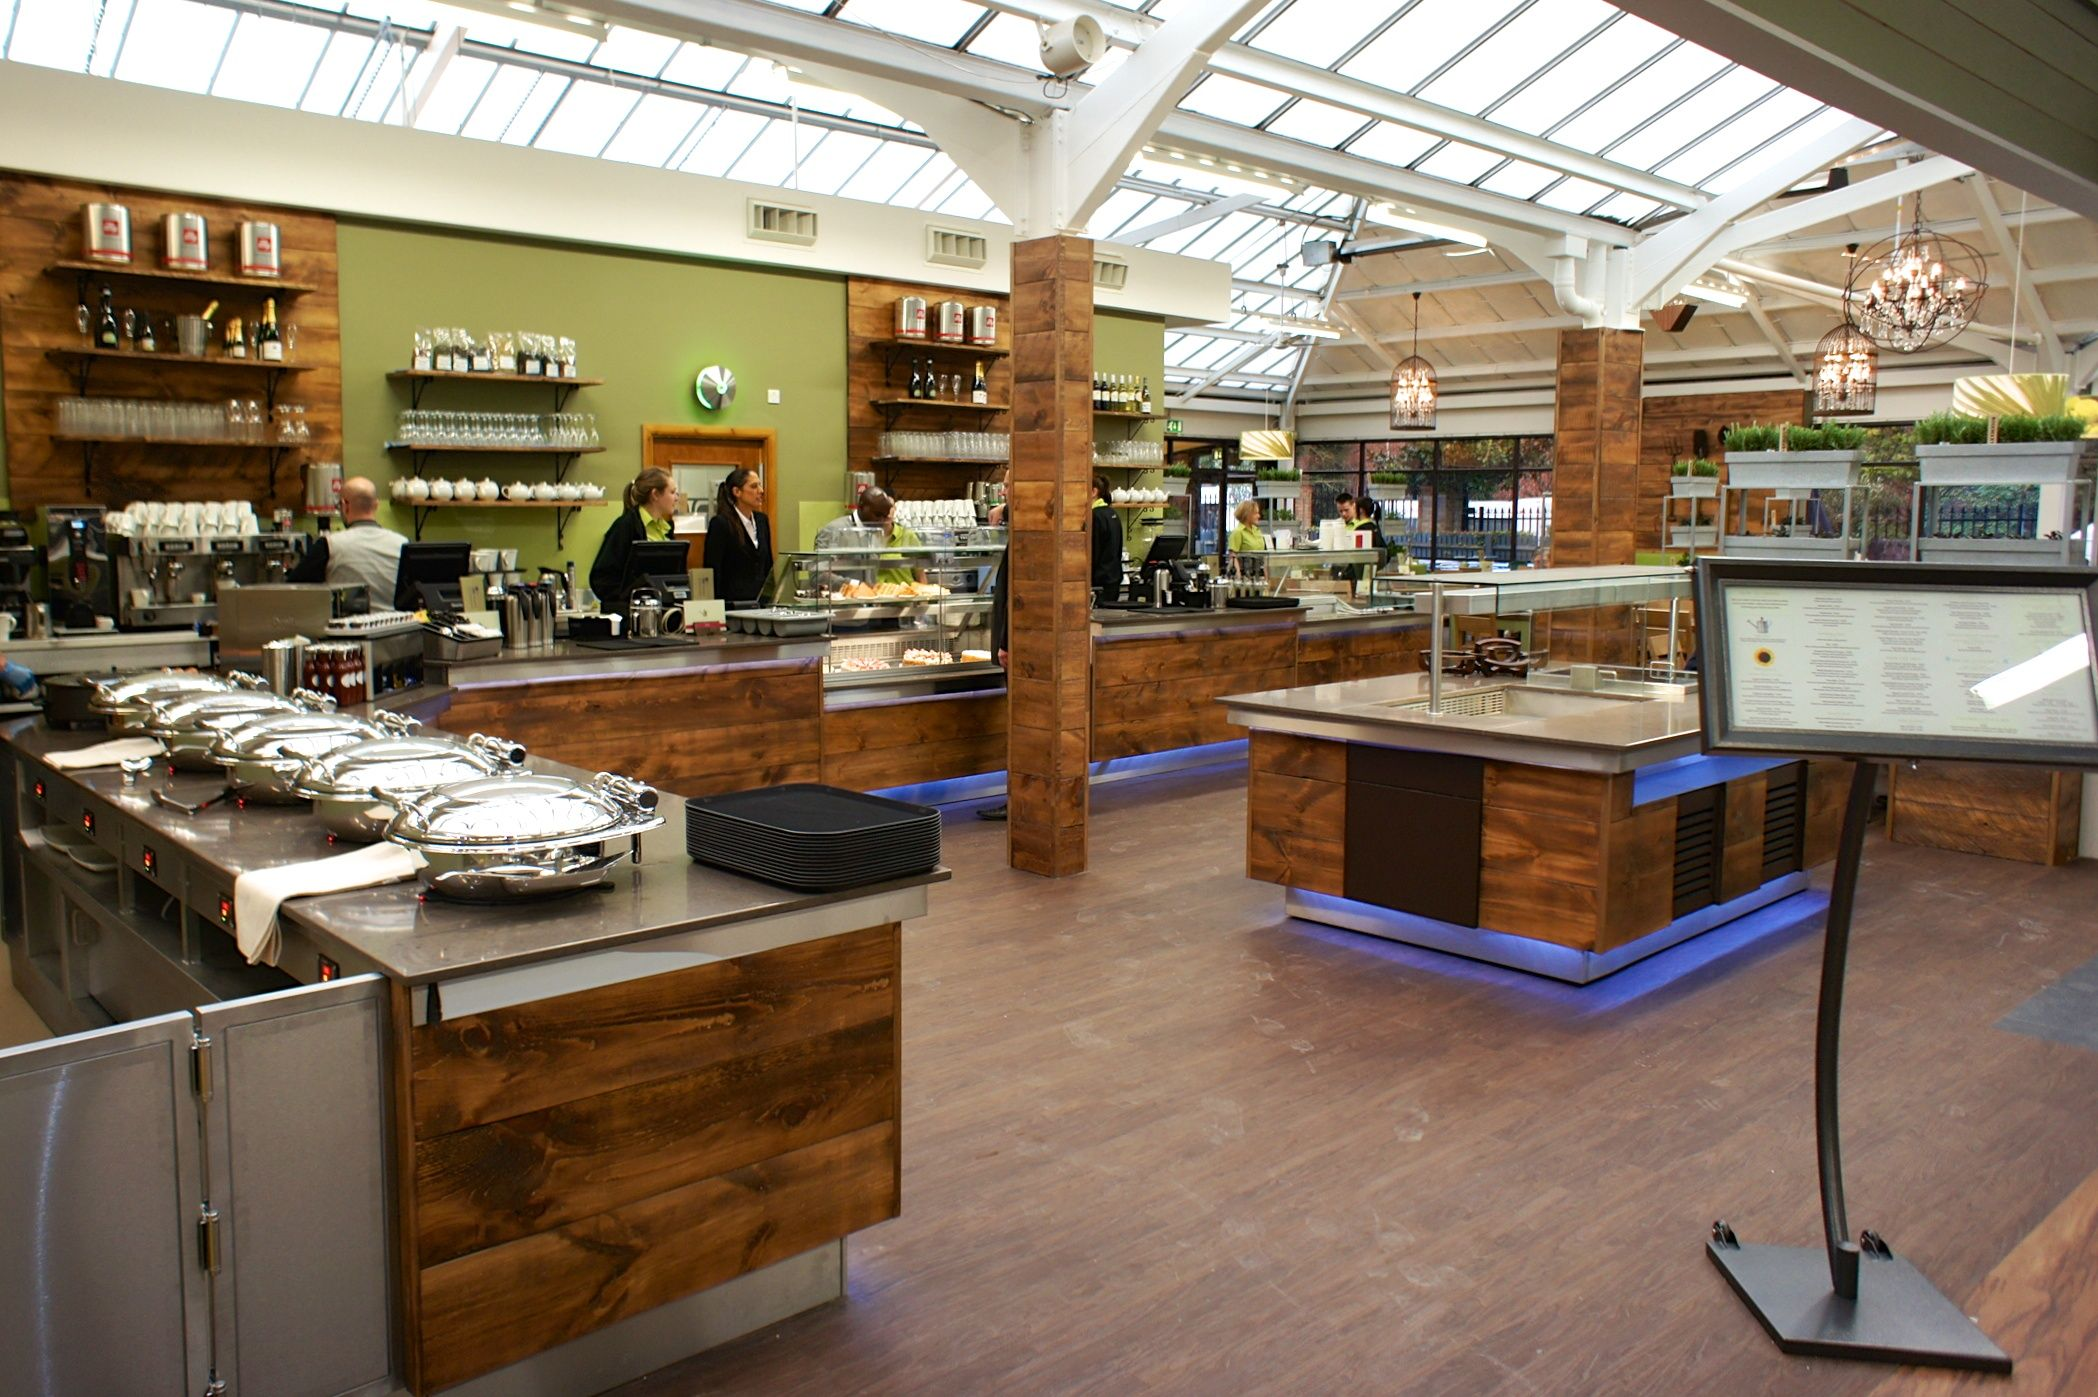 ifse redesigned the catering facilities at squires in twickenham